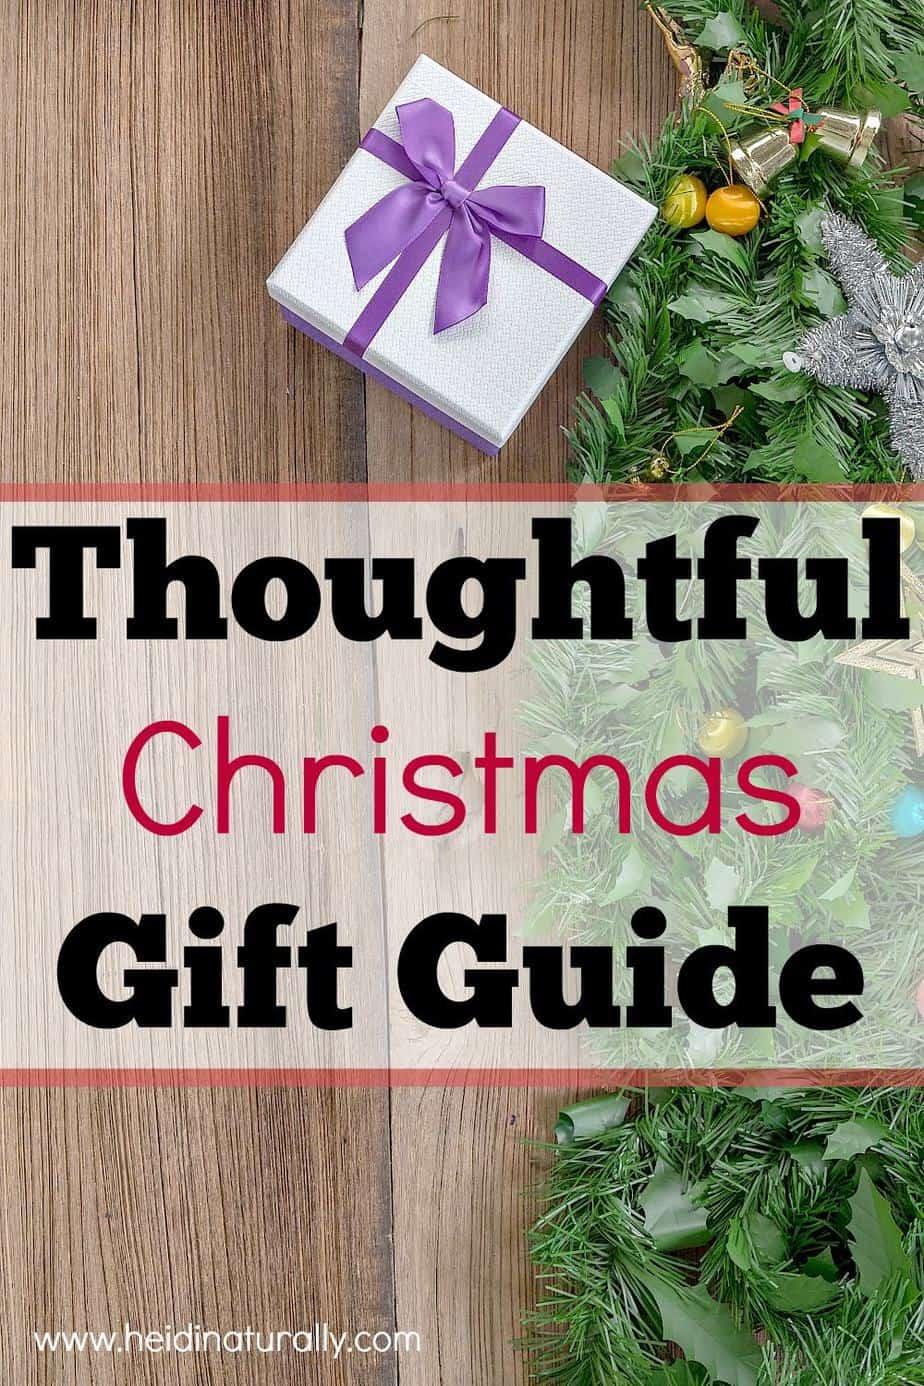 Get this comprehensive Christmas gift guide and learn how to give thoughtful gifts your family and friends will love - recommendations for all ages!